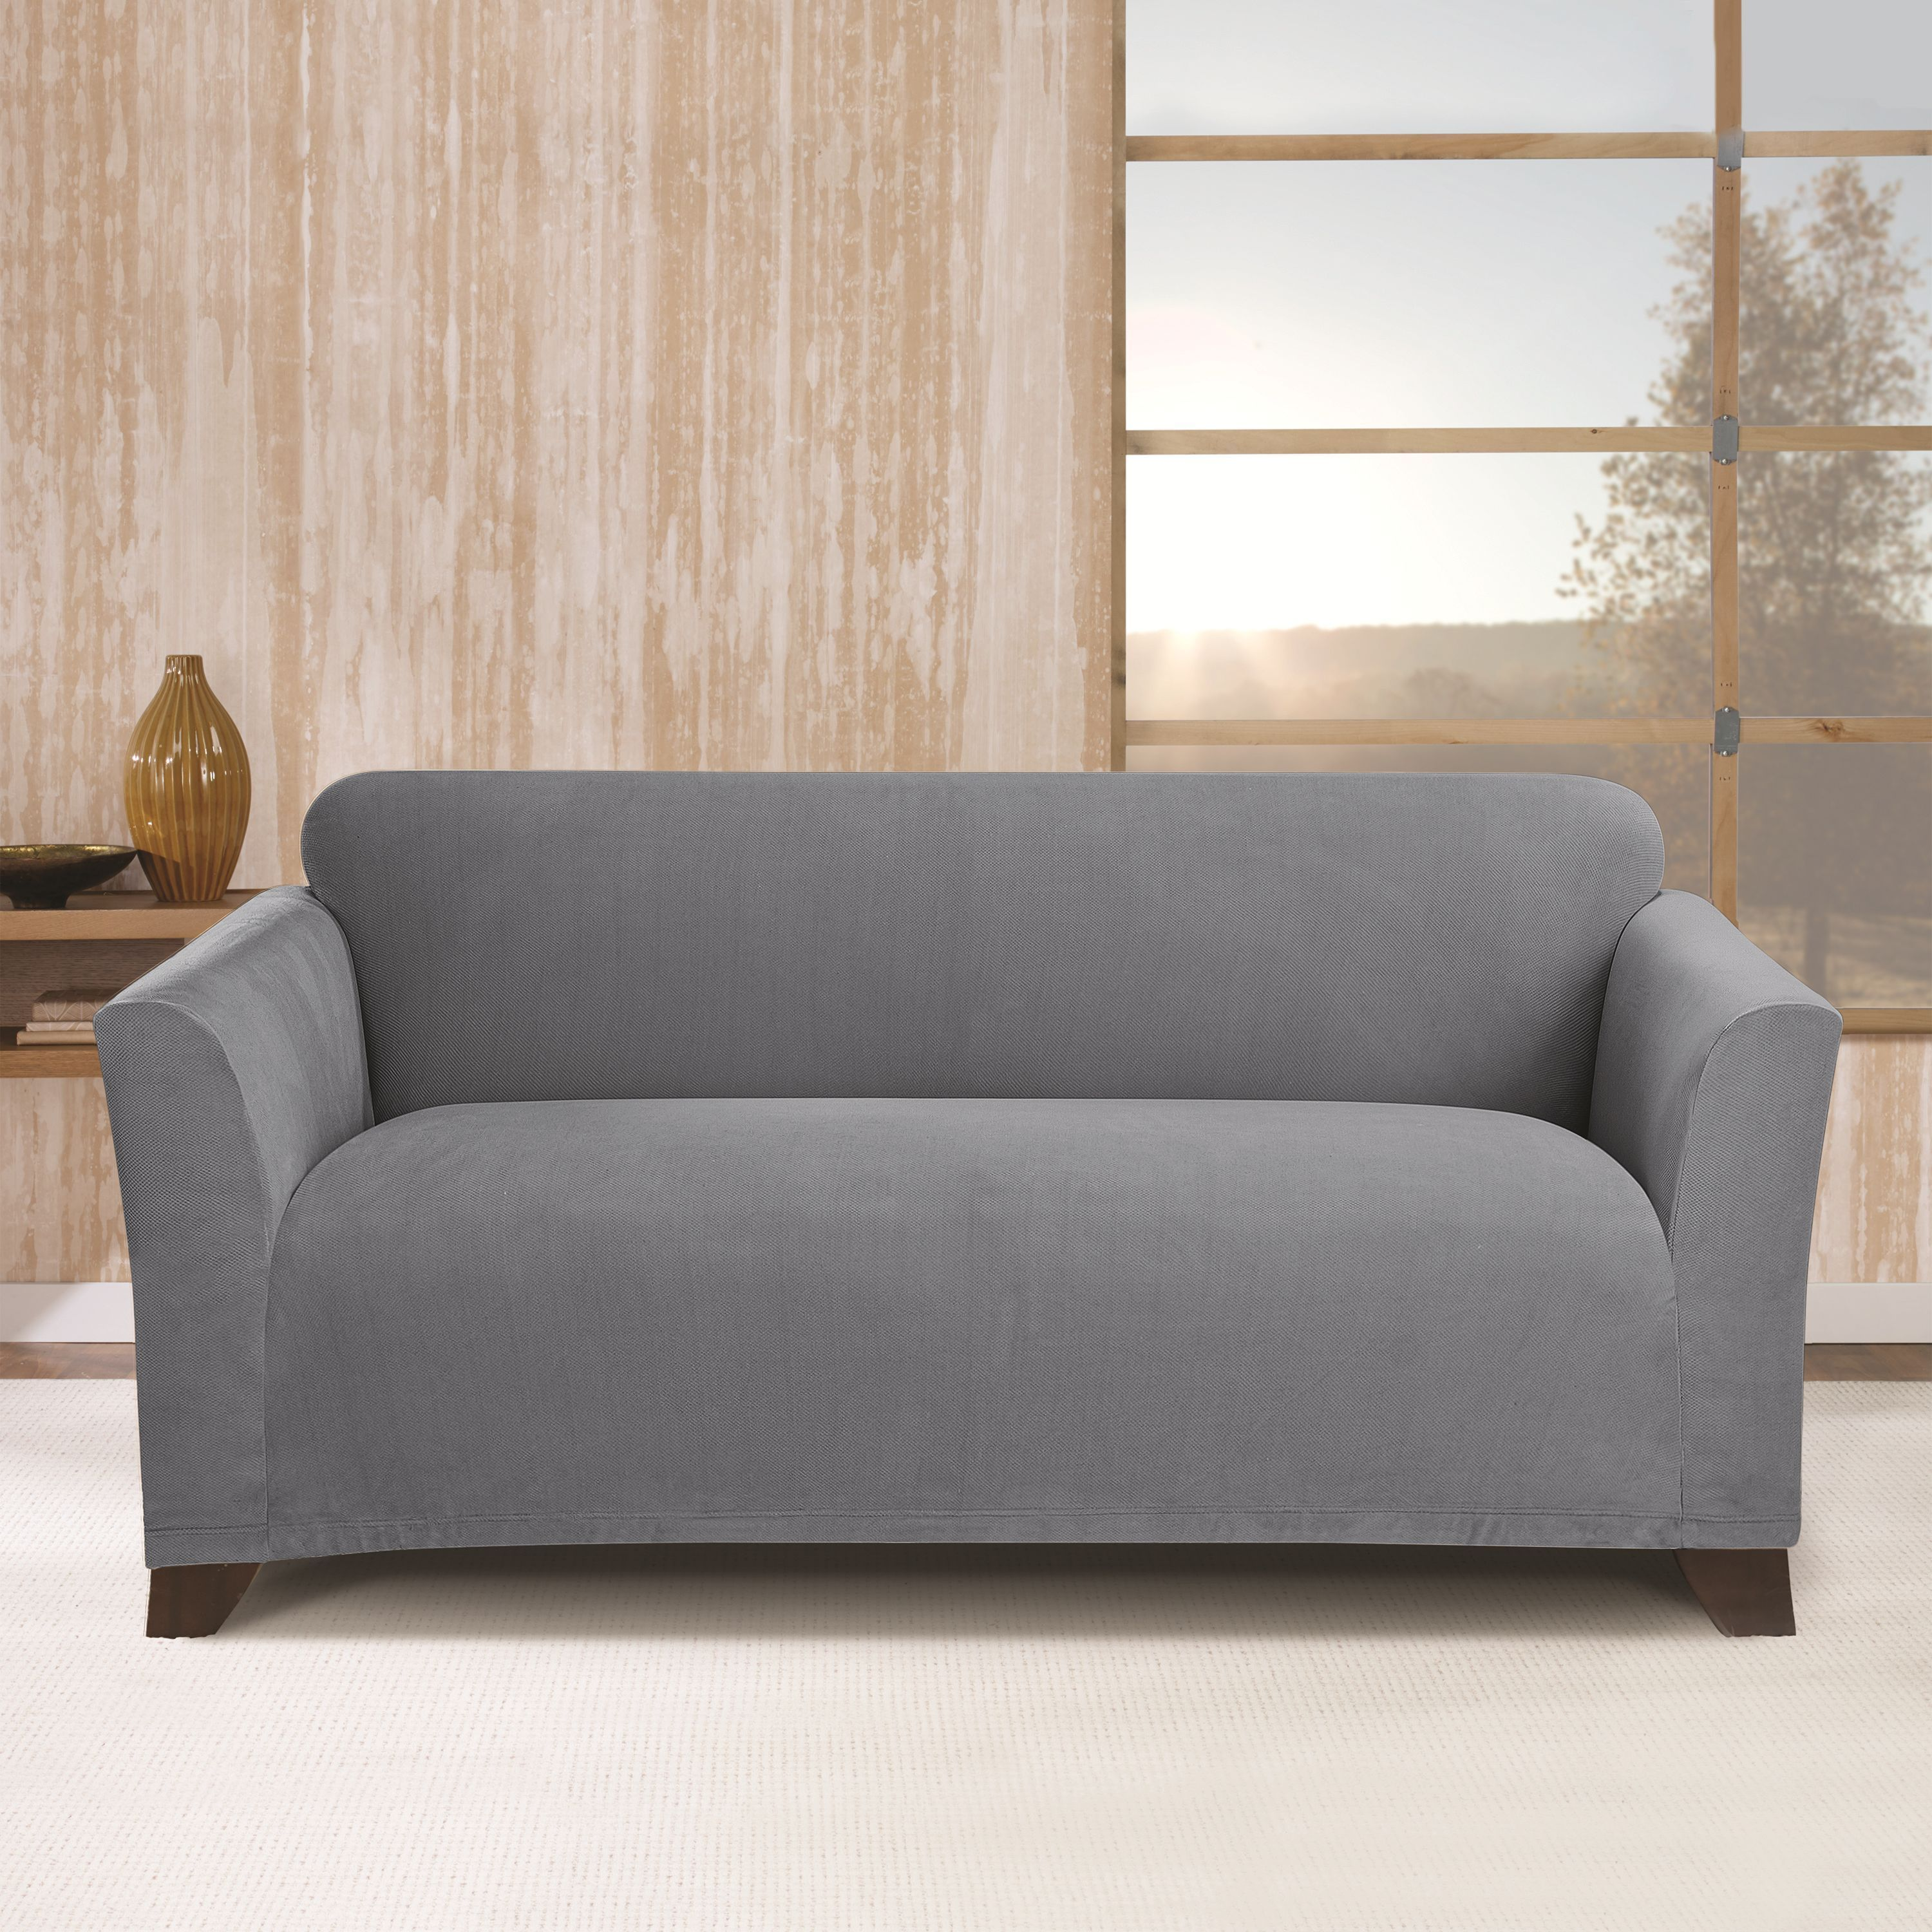 sure fit stretch morgan loveseat furniture cover storm blue solid housses causeuse